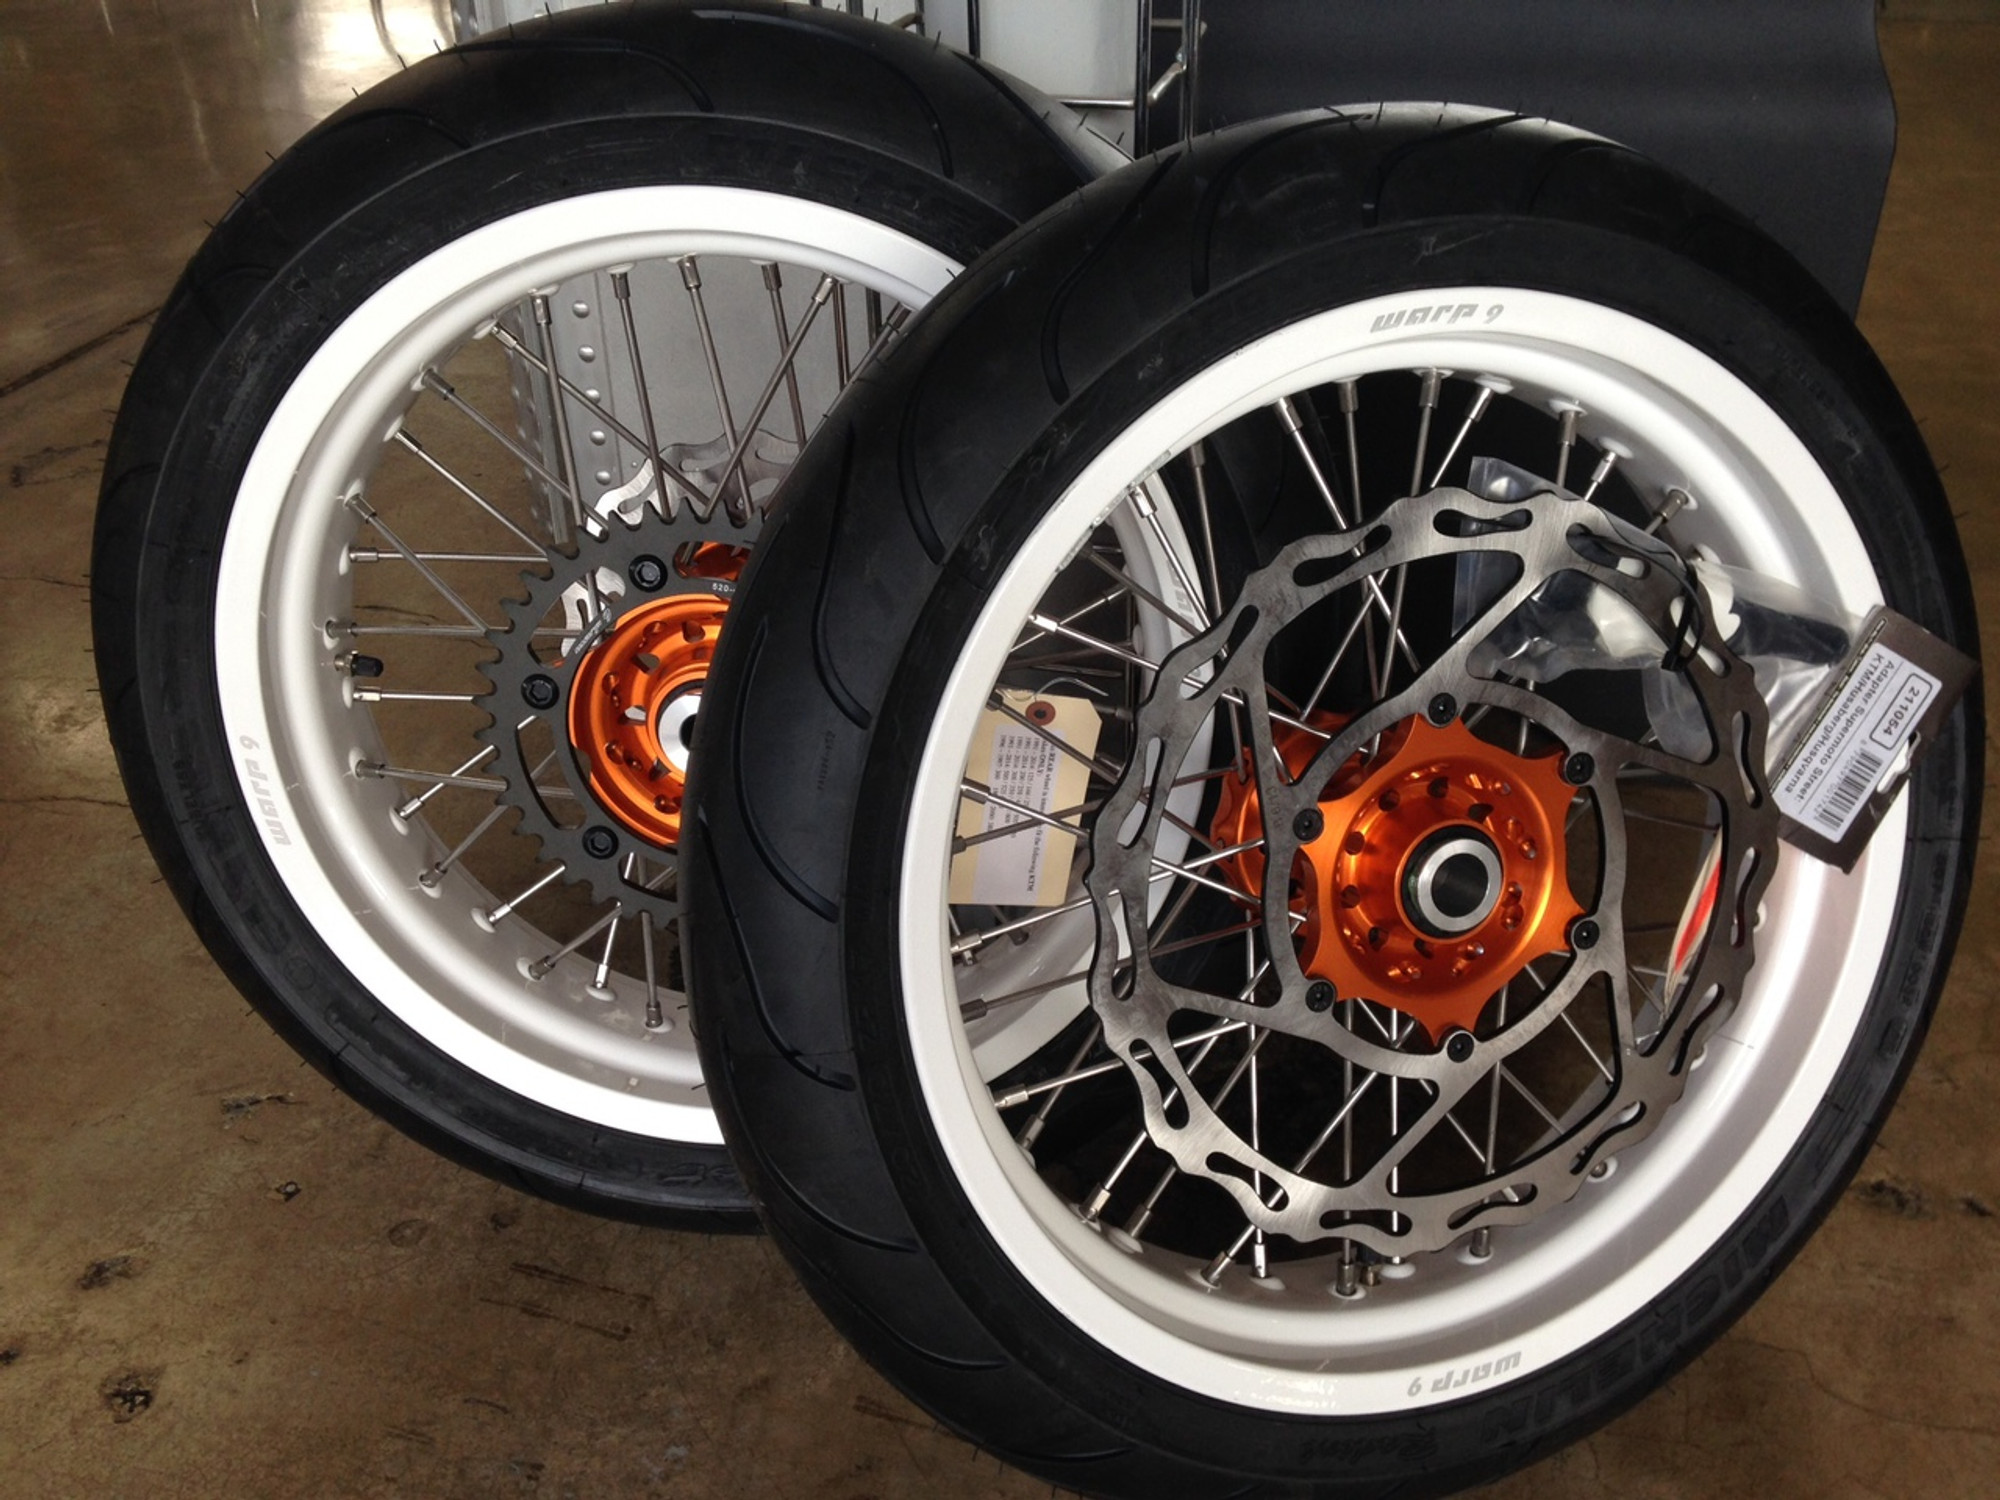 Ktm 690 Supermoto Warp 9 Wheels With Tires For Sale